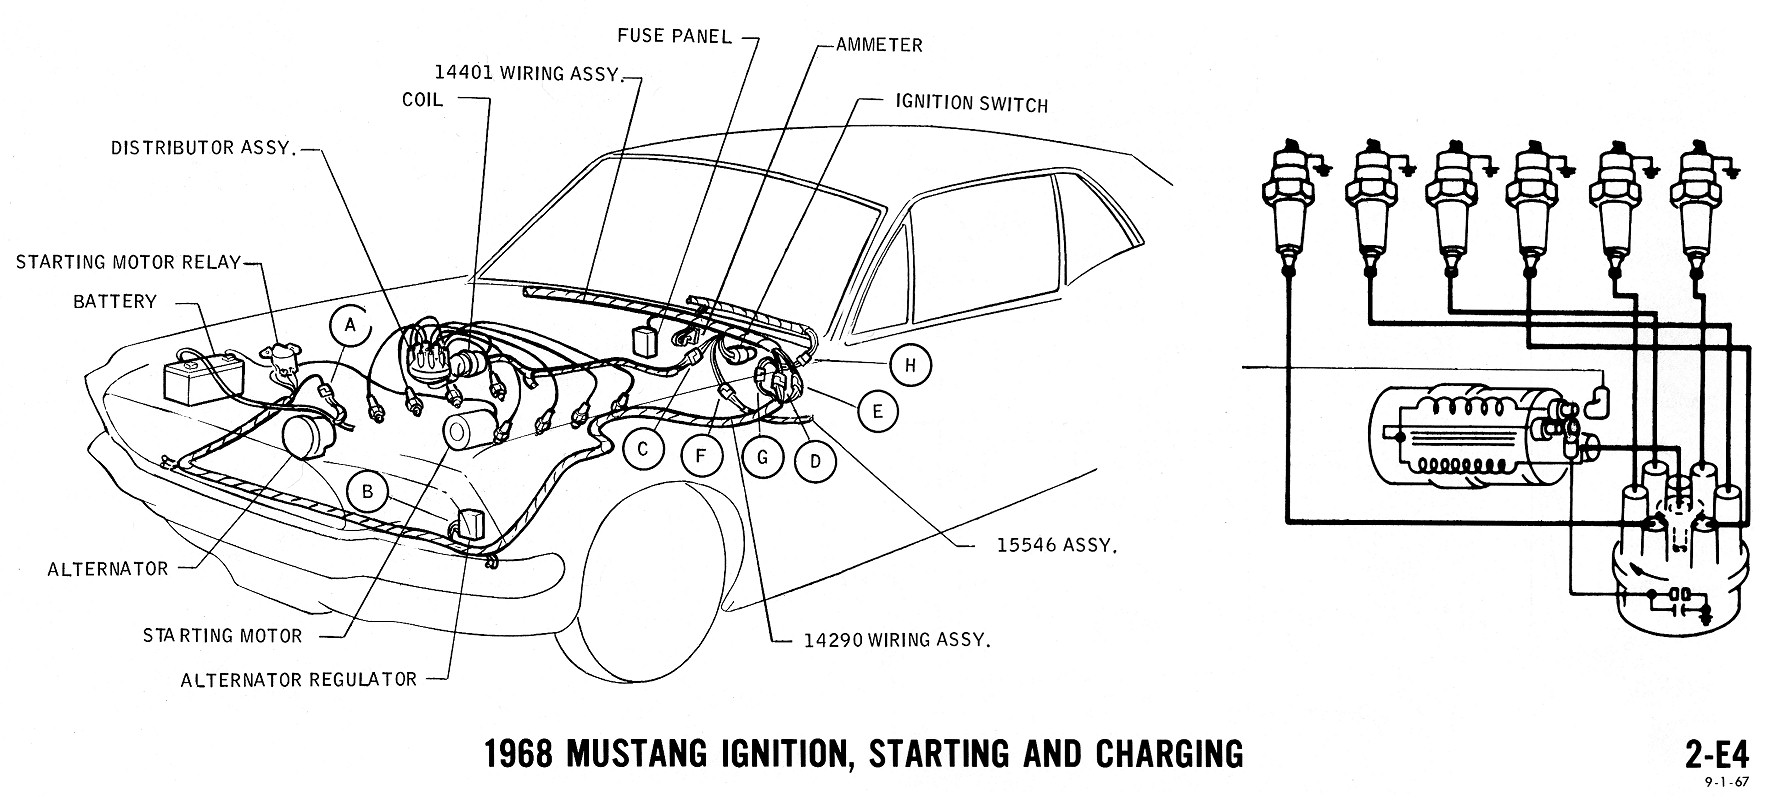 1967 mustang alternator wiring diagram mustang alternator wiring rh pinxpy tripa co 4 Wire Wiper Motor Wiring 83 Chevy Wiper Motor Wiring Diagram